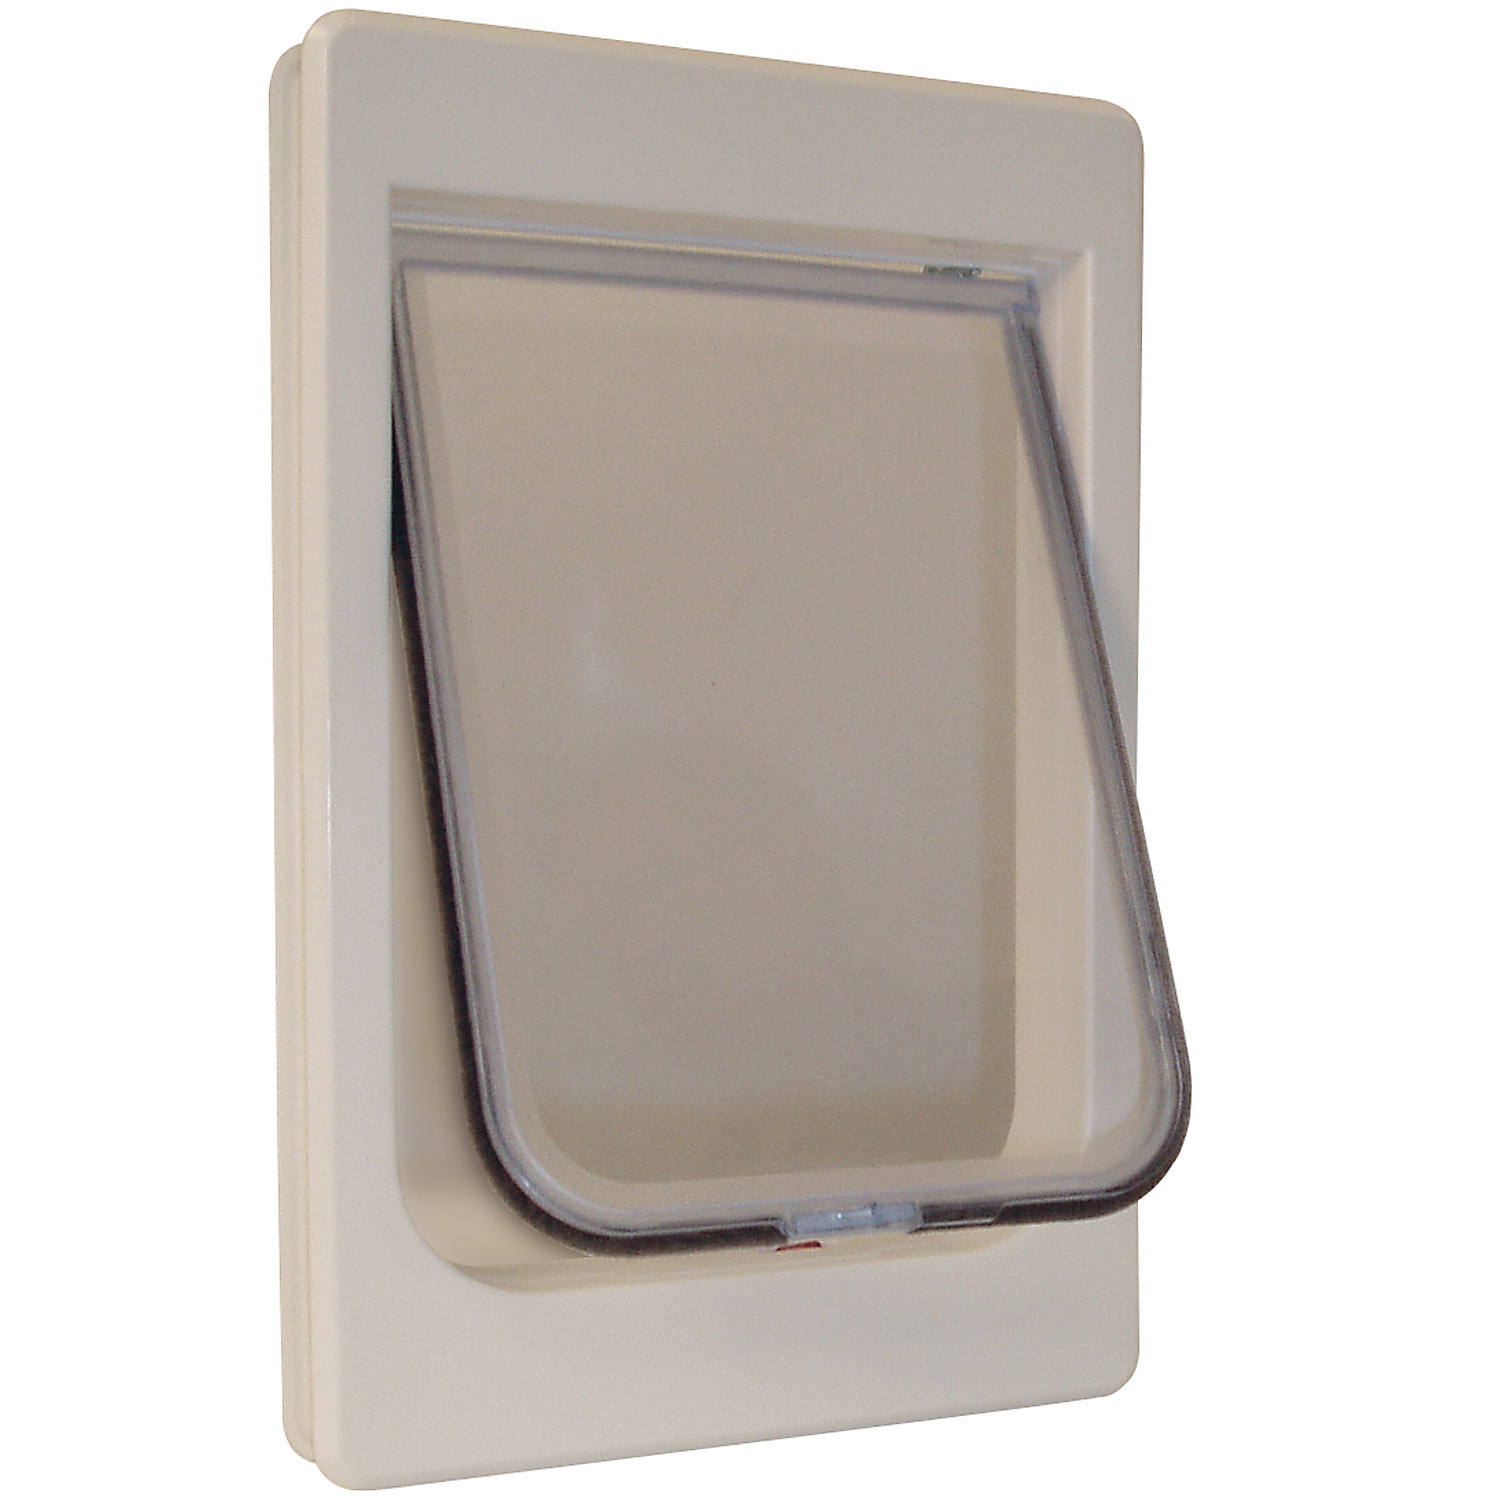 """Perfect Pet Tubby-Kat Cat Door (Flap Opening: 7.5"""""""" W X 10.5"""""""" H; Fits Door Thickness 1.25""""""""-1.75""""""""; For Cats up to 25 lbs.)"""